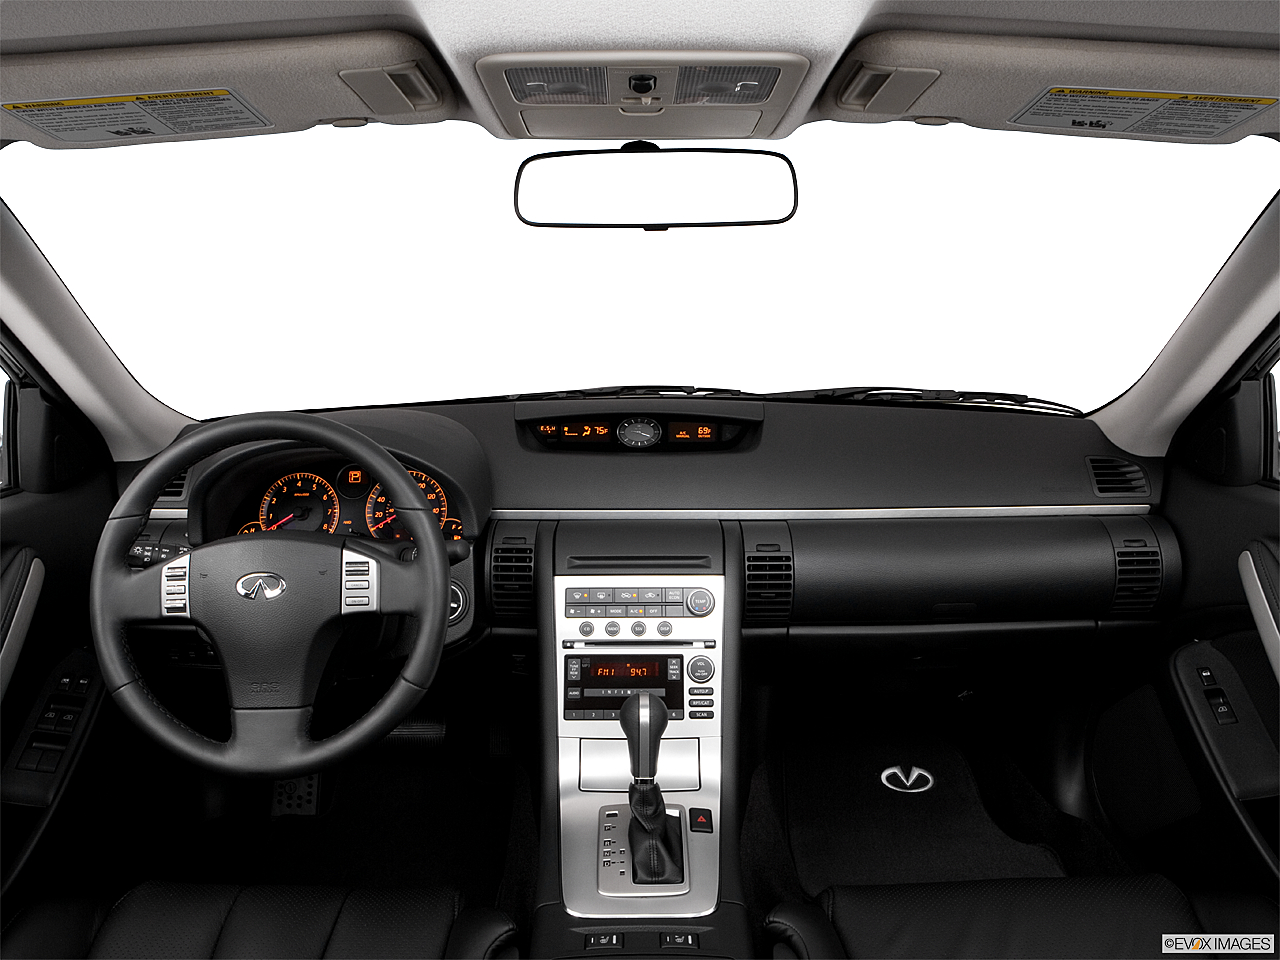 2006 Infiniti G Sedan G35x, Centered Wide Dash Shot